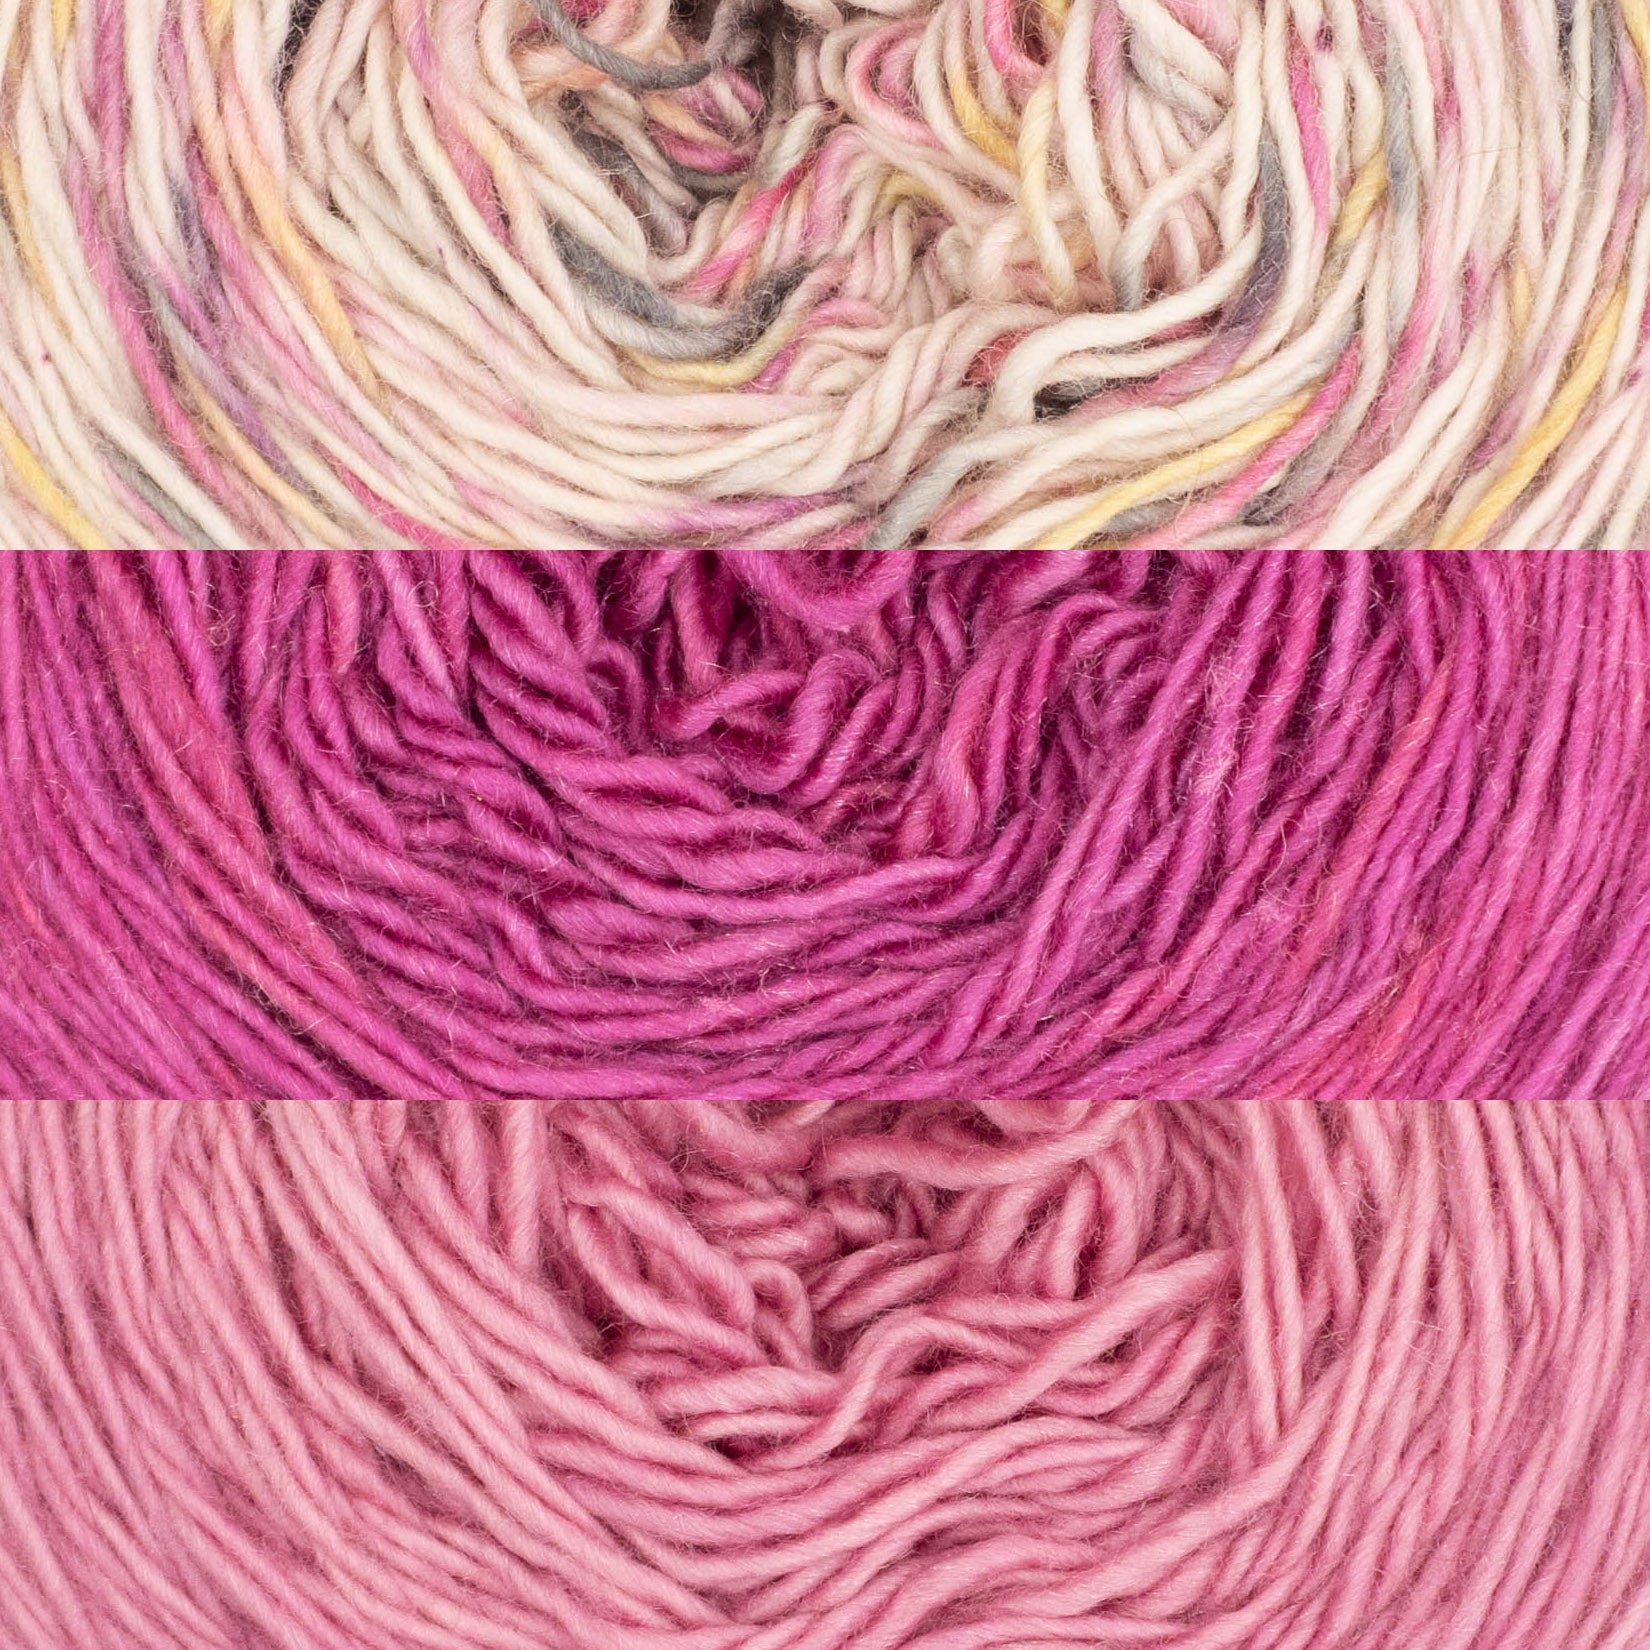 Three colours of Naturally dyed soft singles yarn